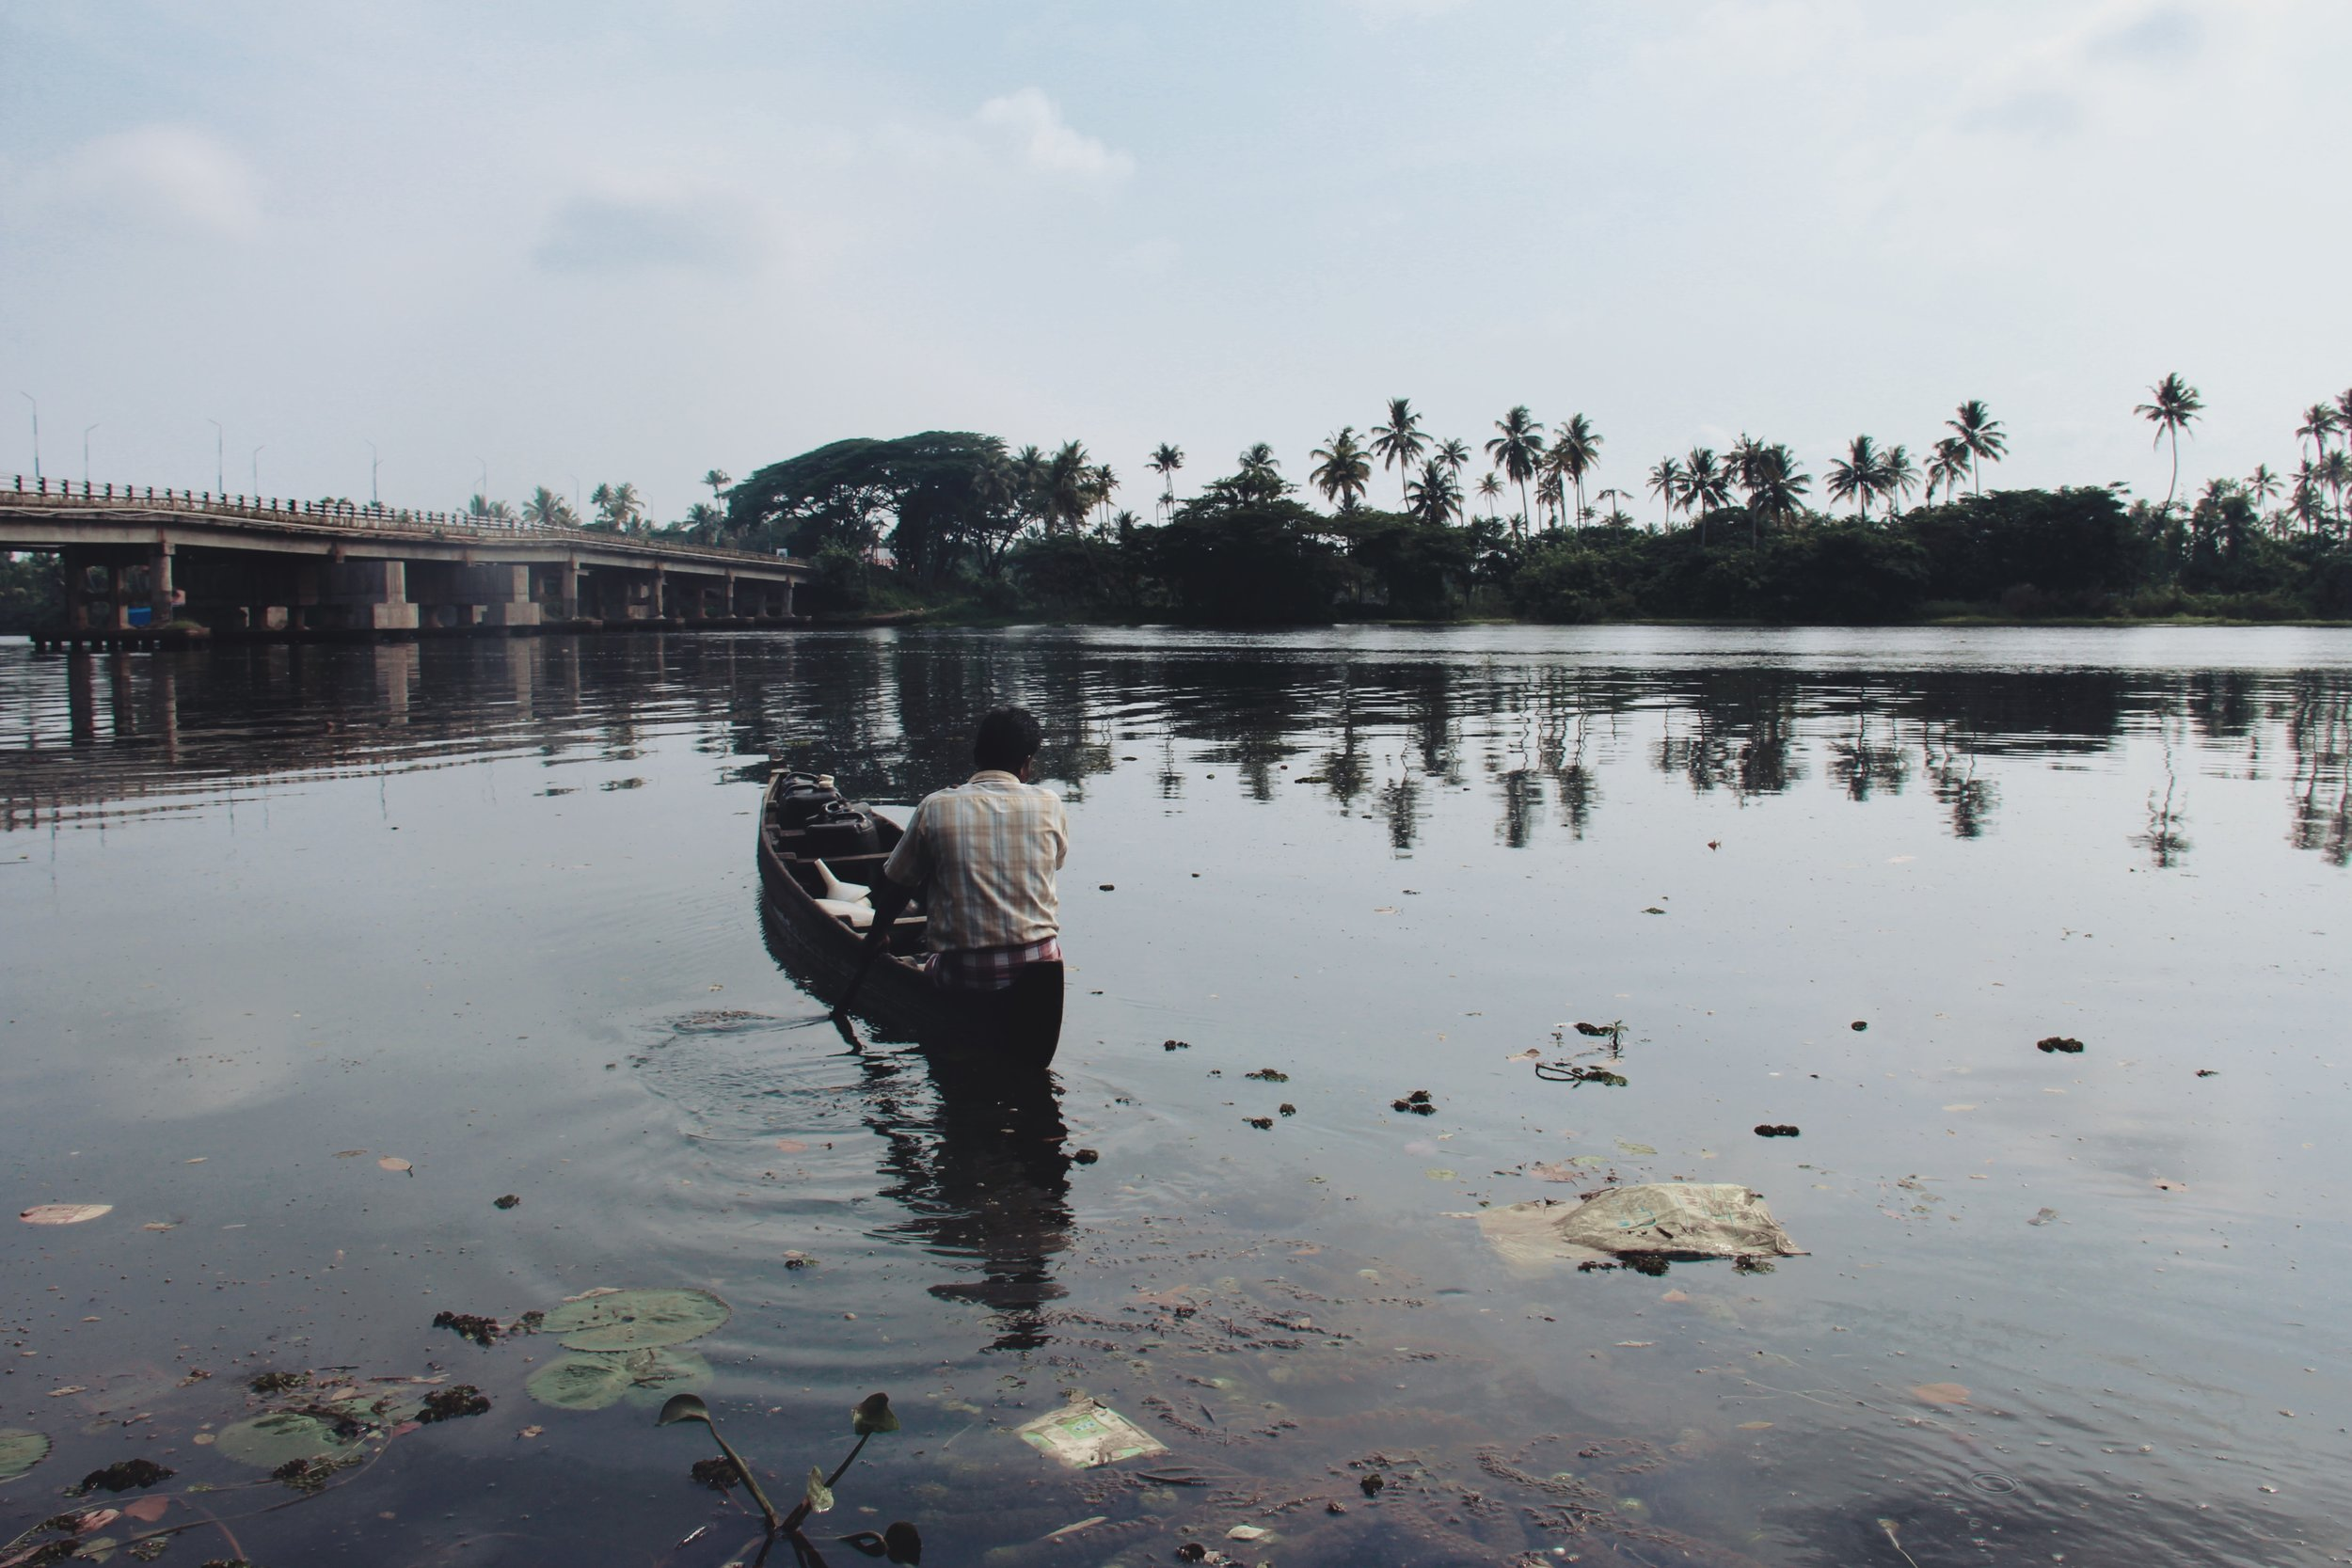 Signs of pollution across the backwaters of Alappuzha, Kerala.